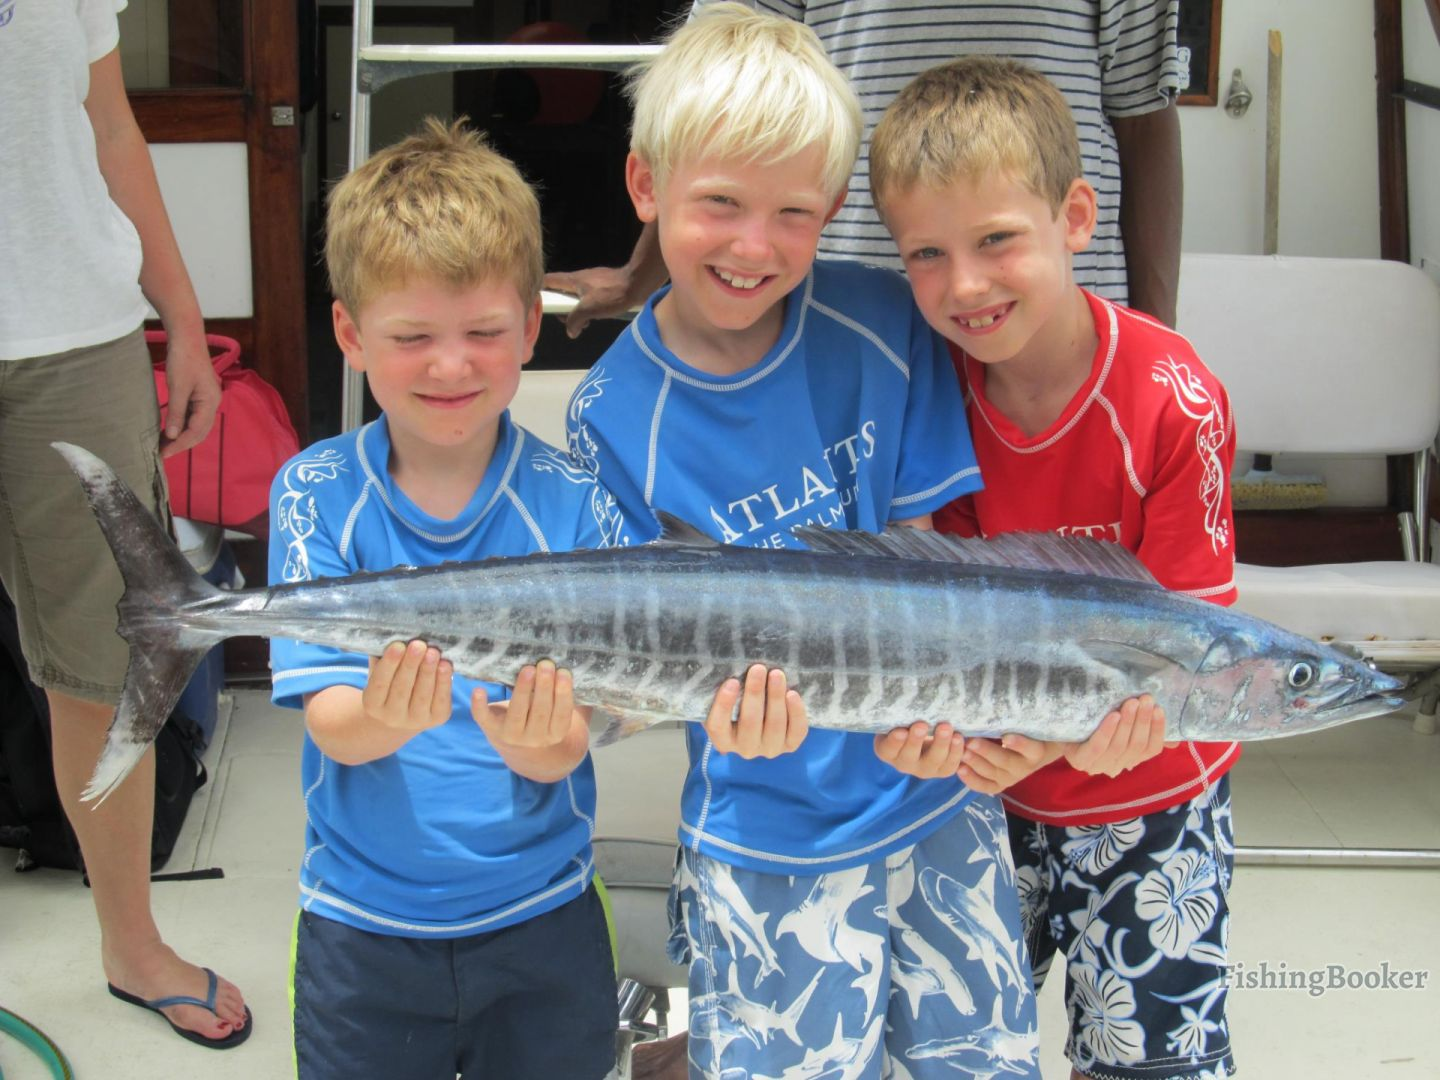 Three young boys holding a Wahoo